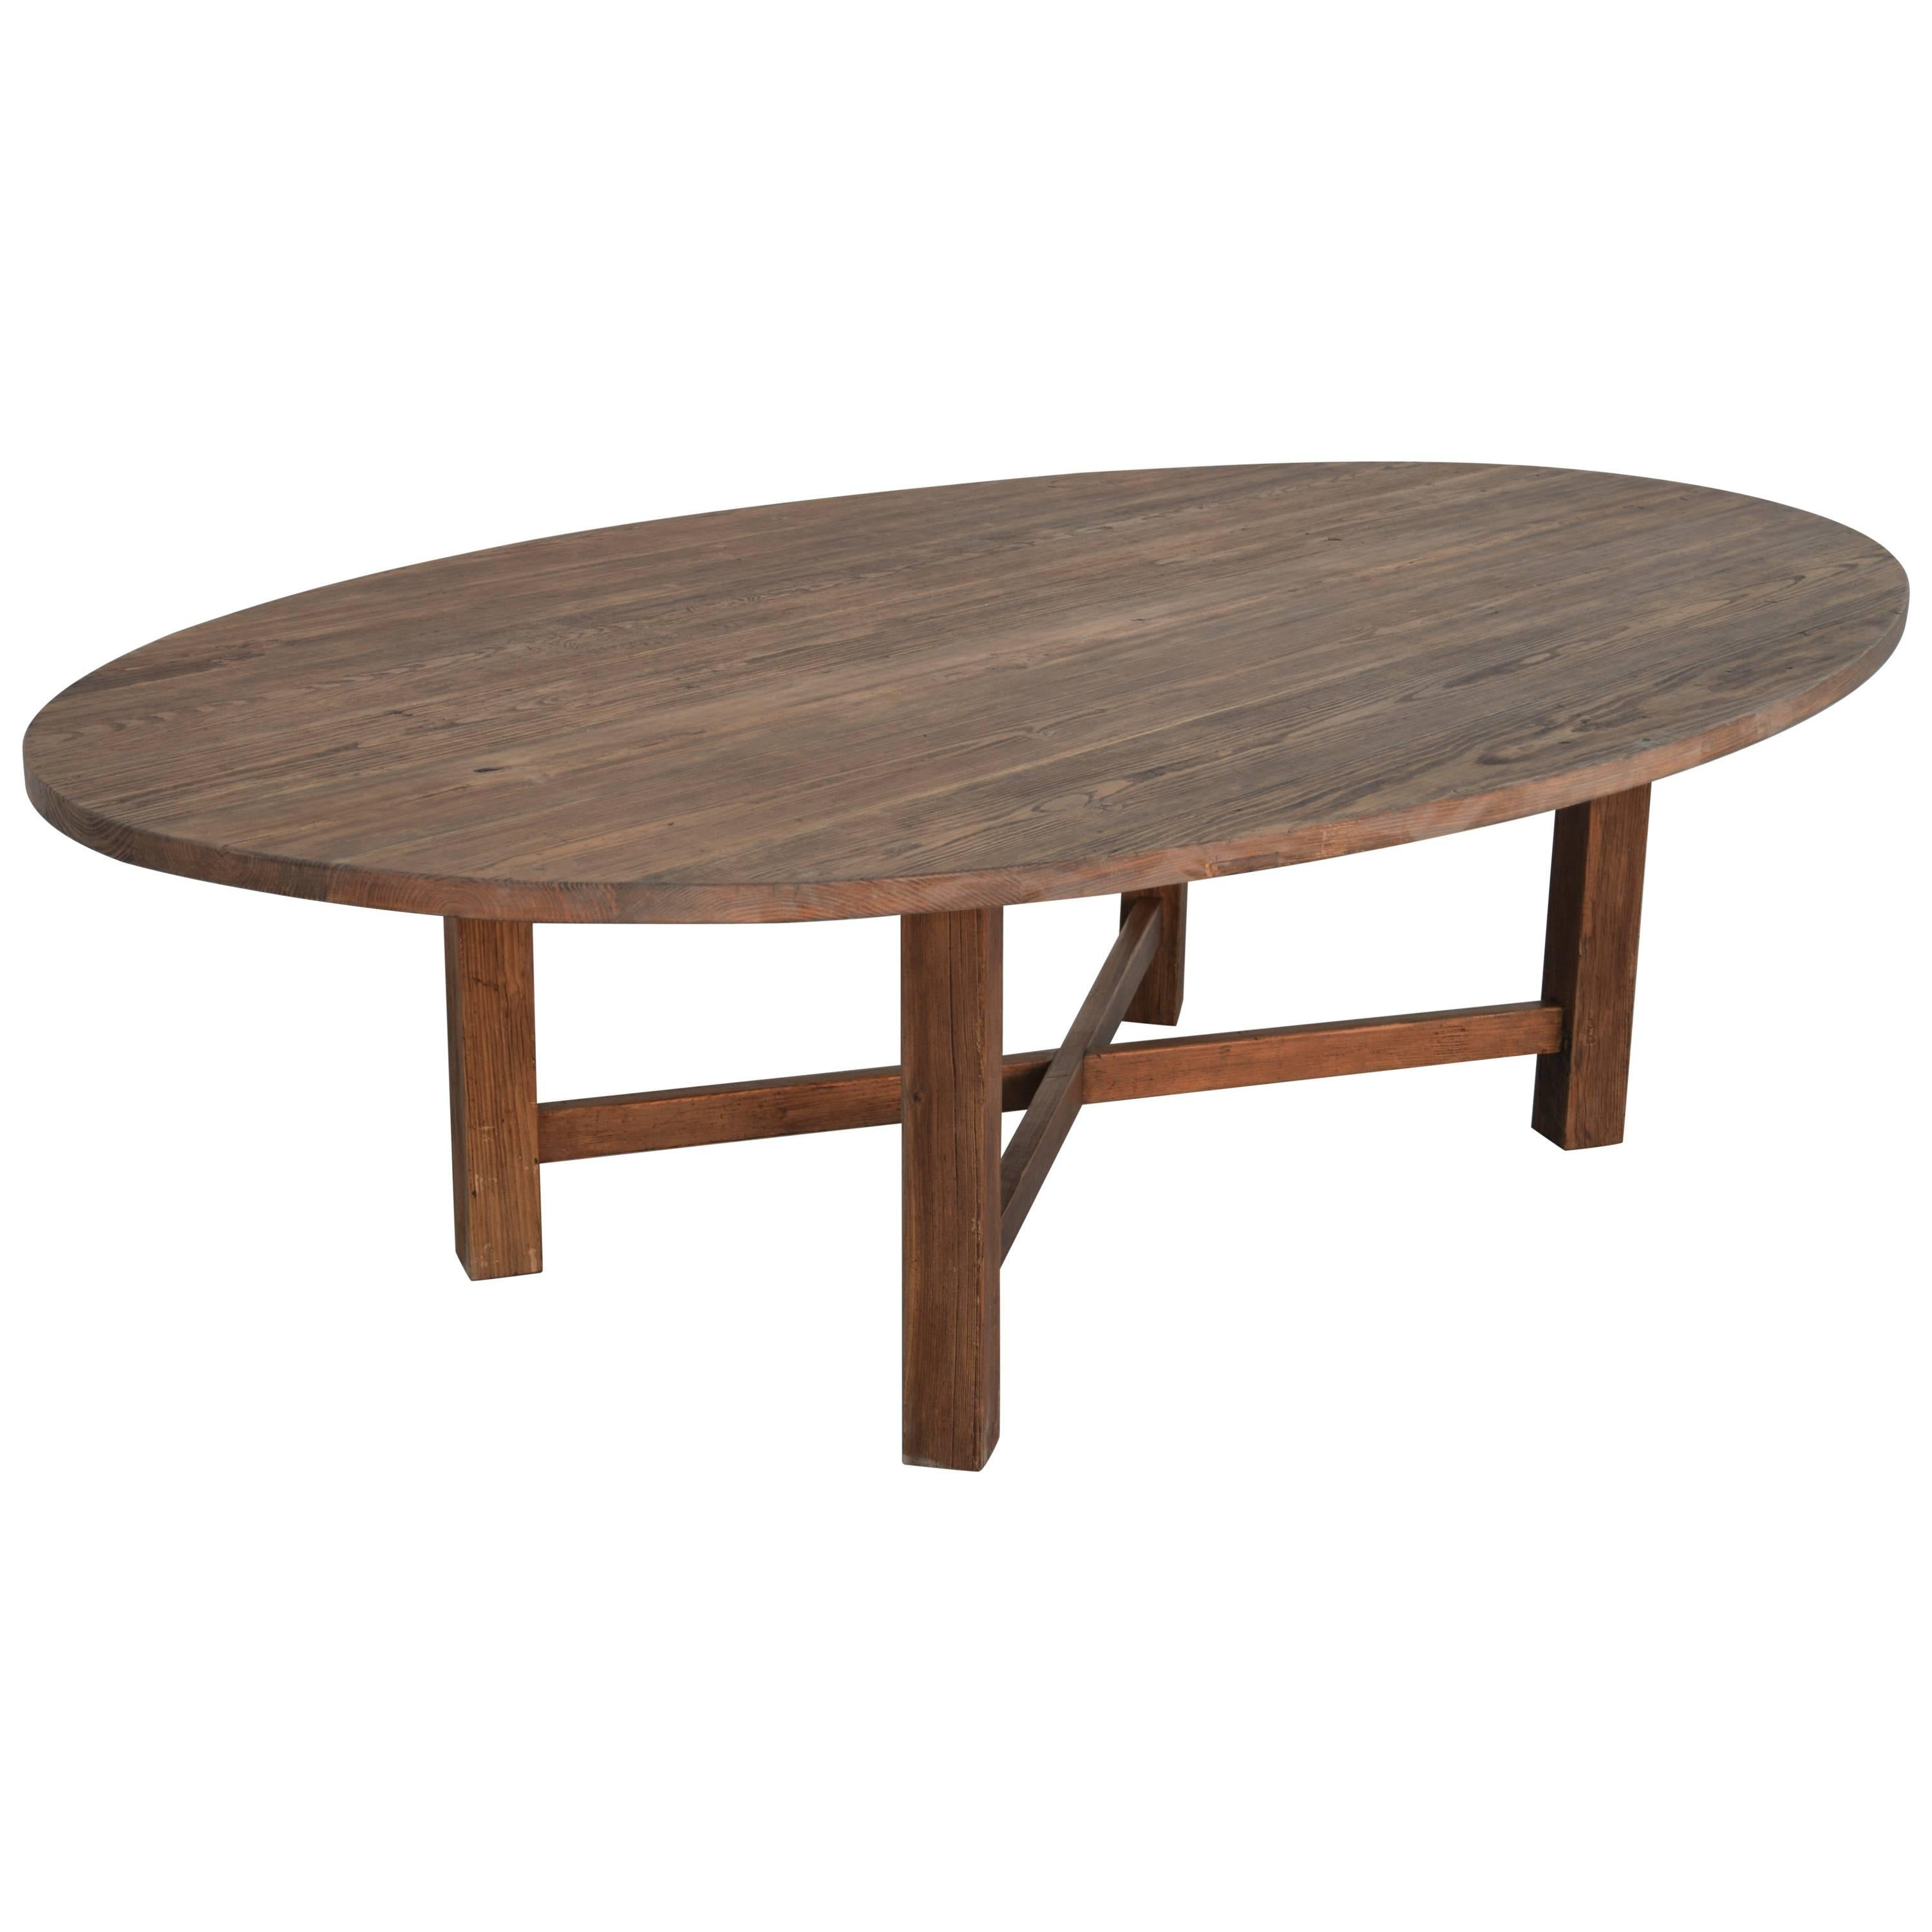 Oval Dining Table in Reclaimed Heart Pine, Custom Made by Petersen Antiques